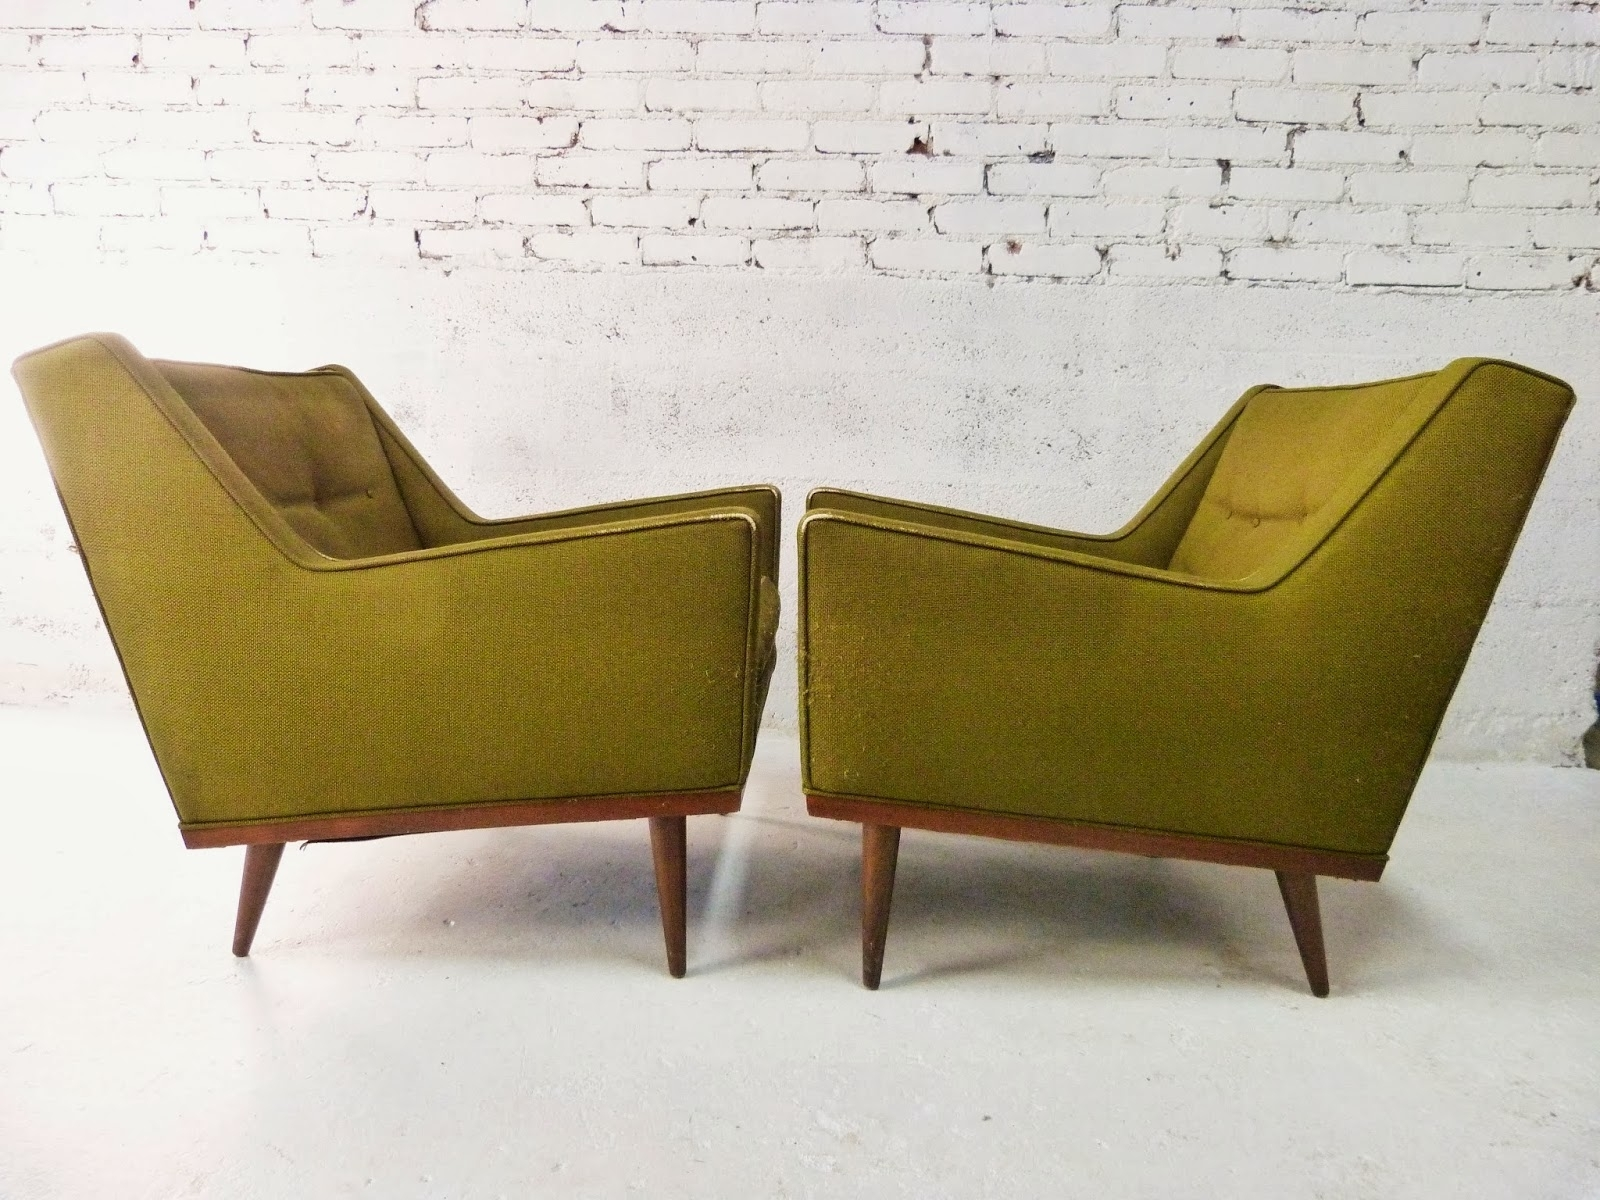 Retro Sofas And Chairs For Preferred Modern Retro Furniture (View 7 of 15)